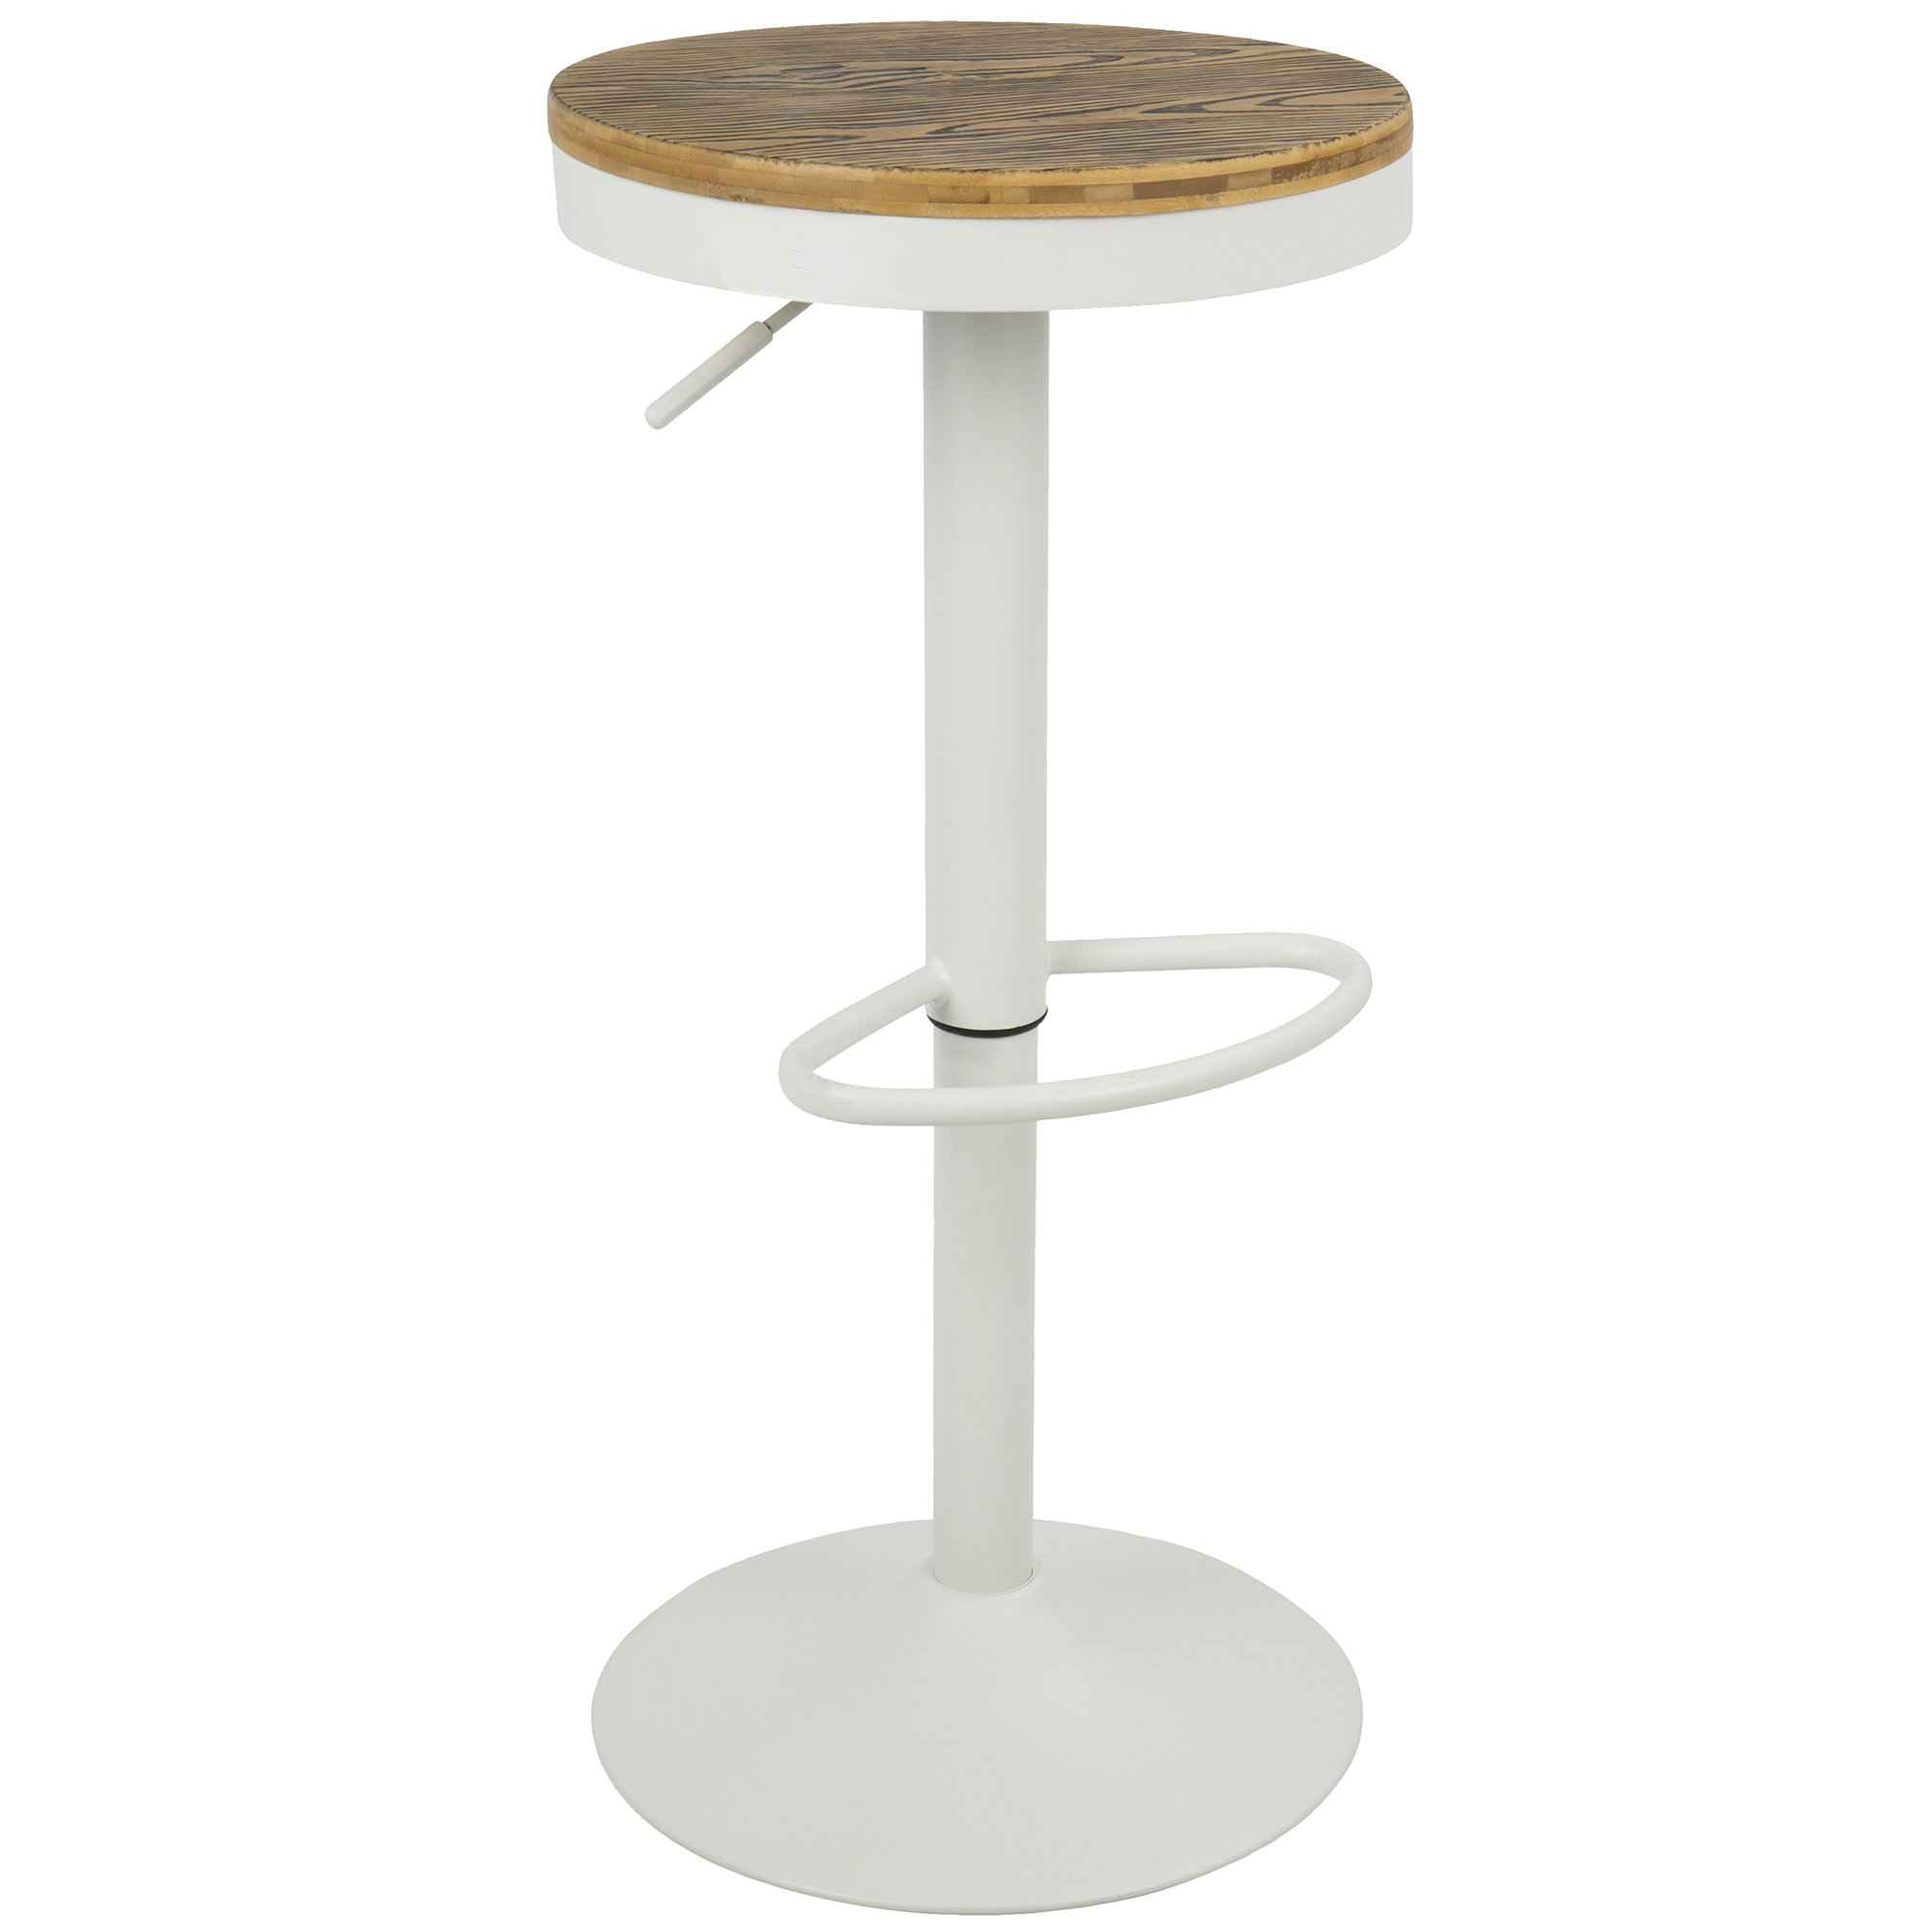 Dakota Industrial Adjustable Bar Stool with Swivel in White by Lumisource-Set of 2 by LumiSource